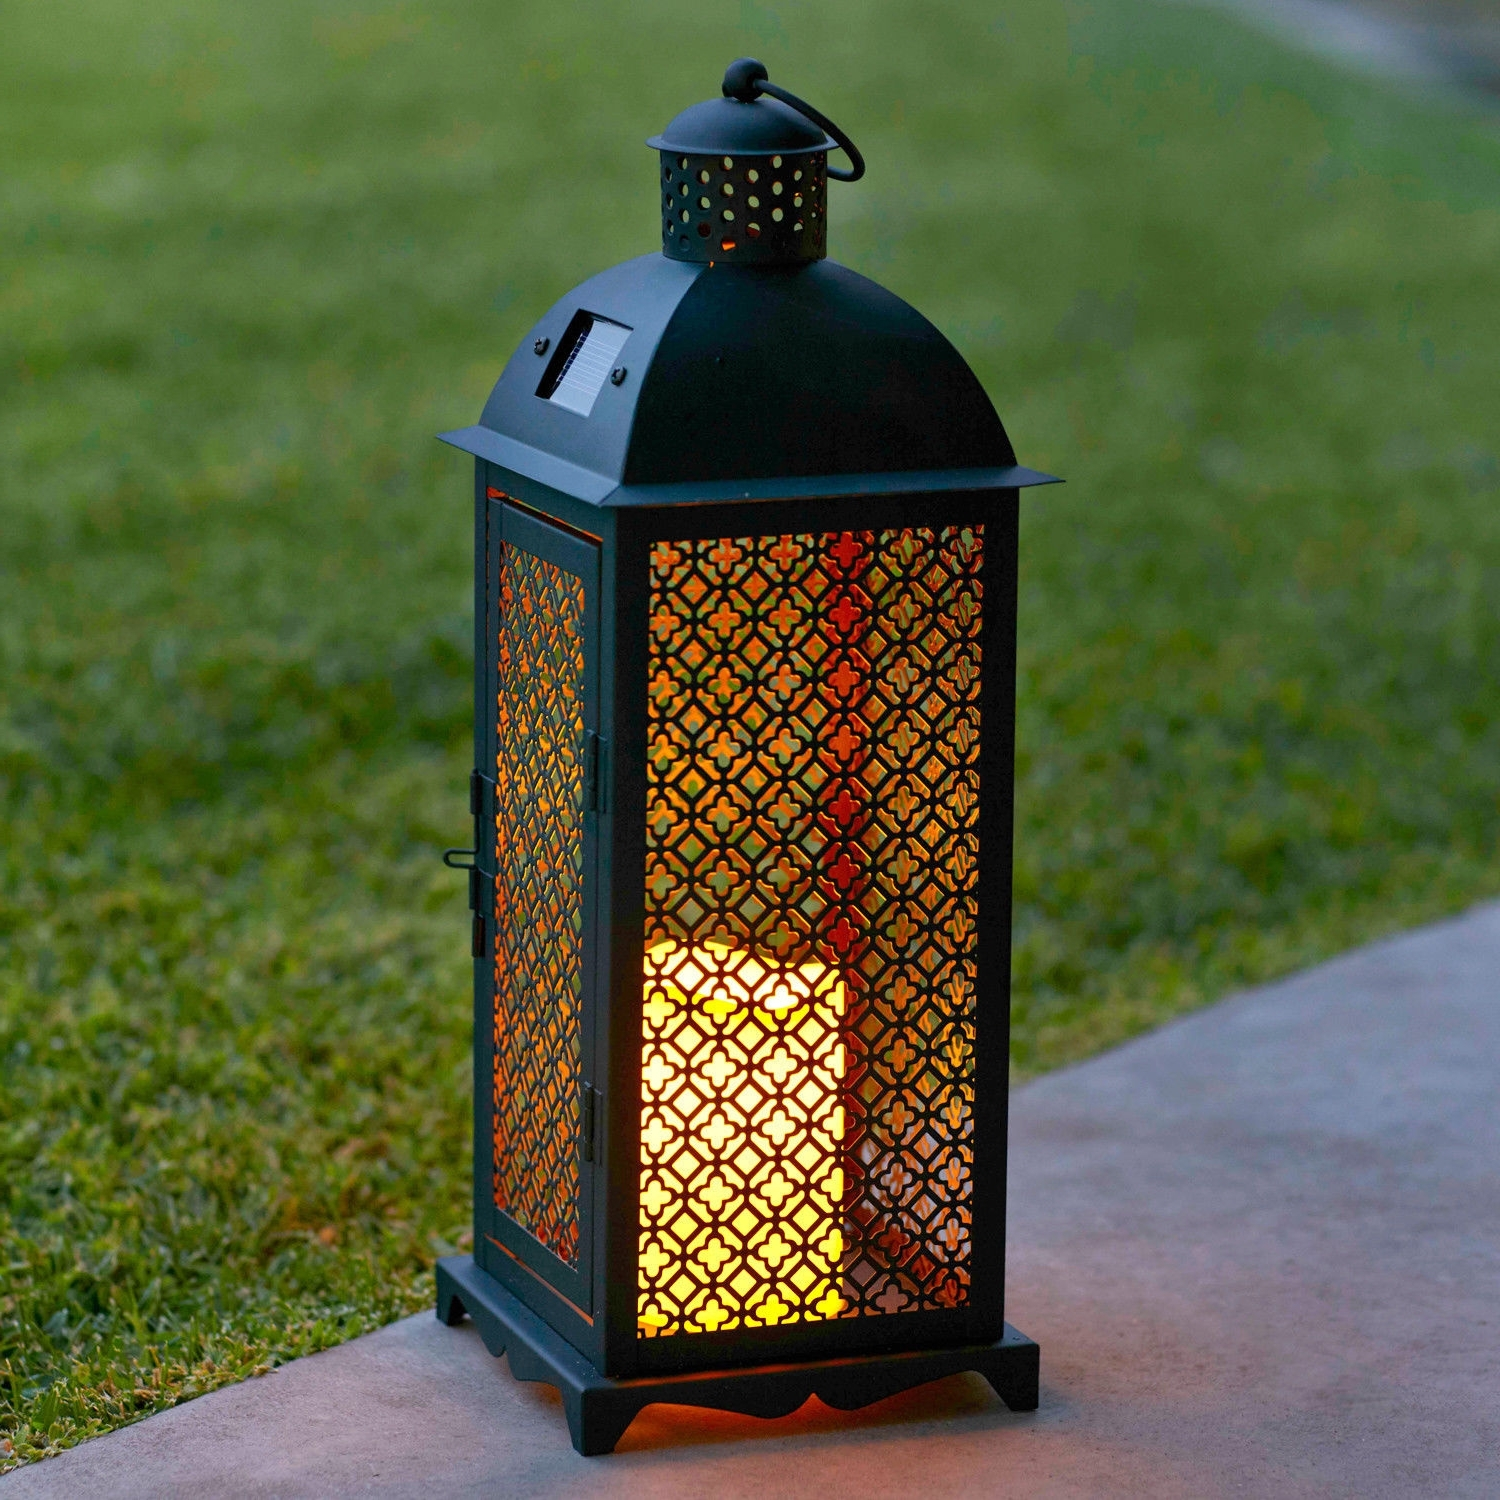 Outdoor Lanterns With Flameless Candles Regarding Well Known Moroccan Solar Powered Led Garden Outdoor Flameless Candle Lantern (View 14 of 20)